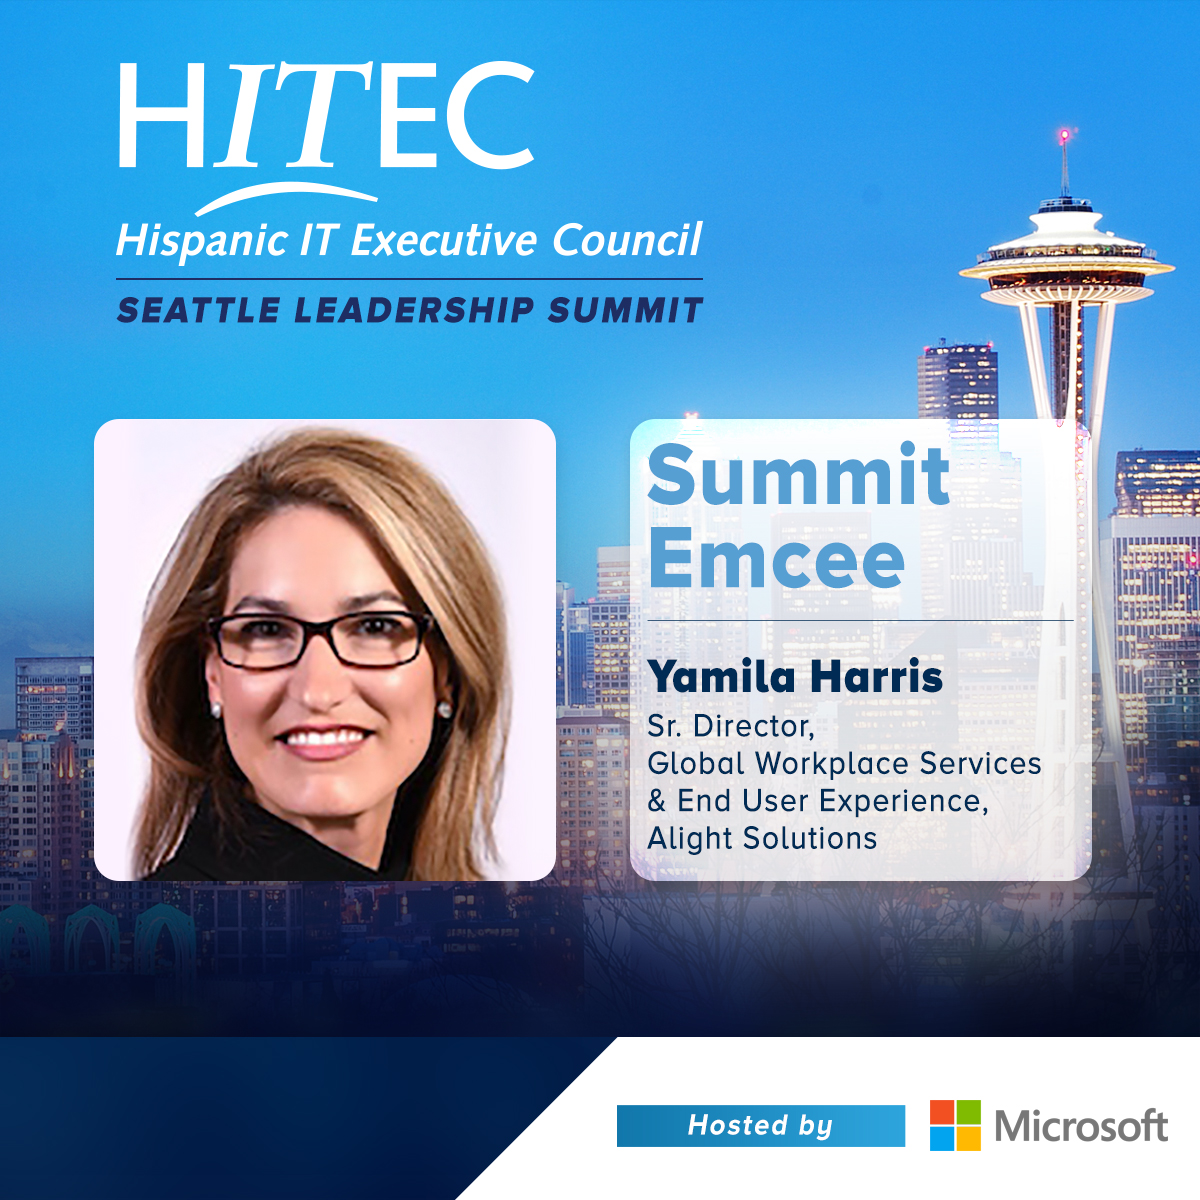 HITEC Leadership Summit